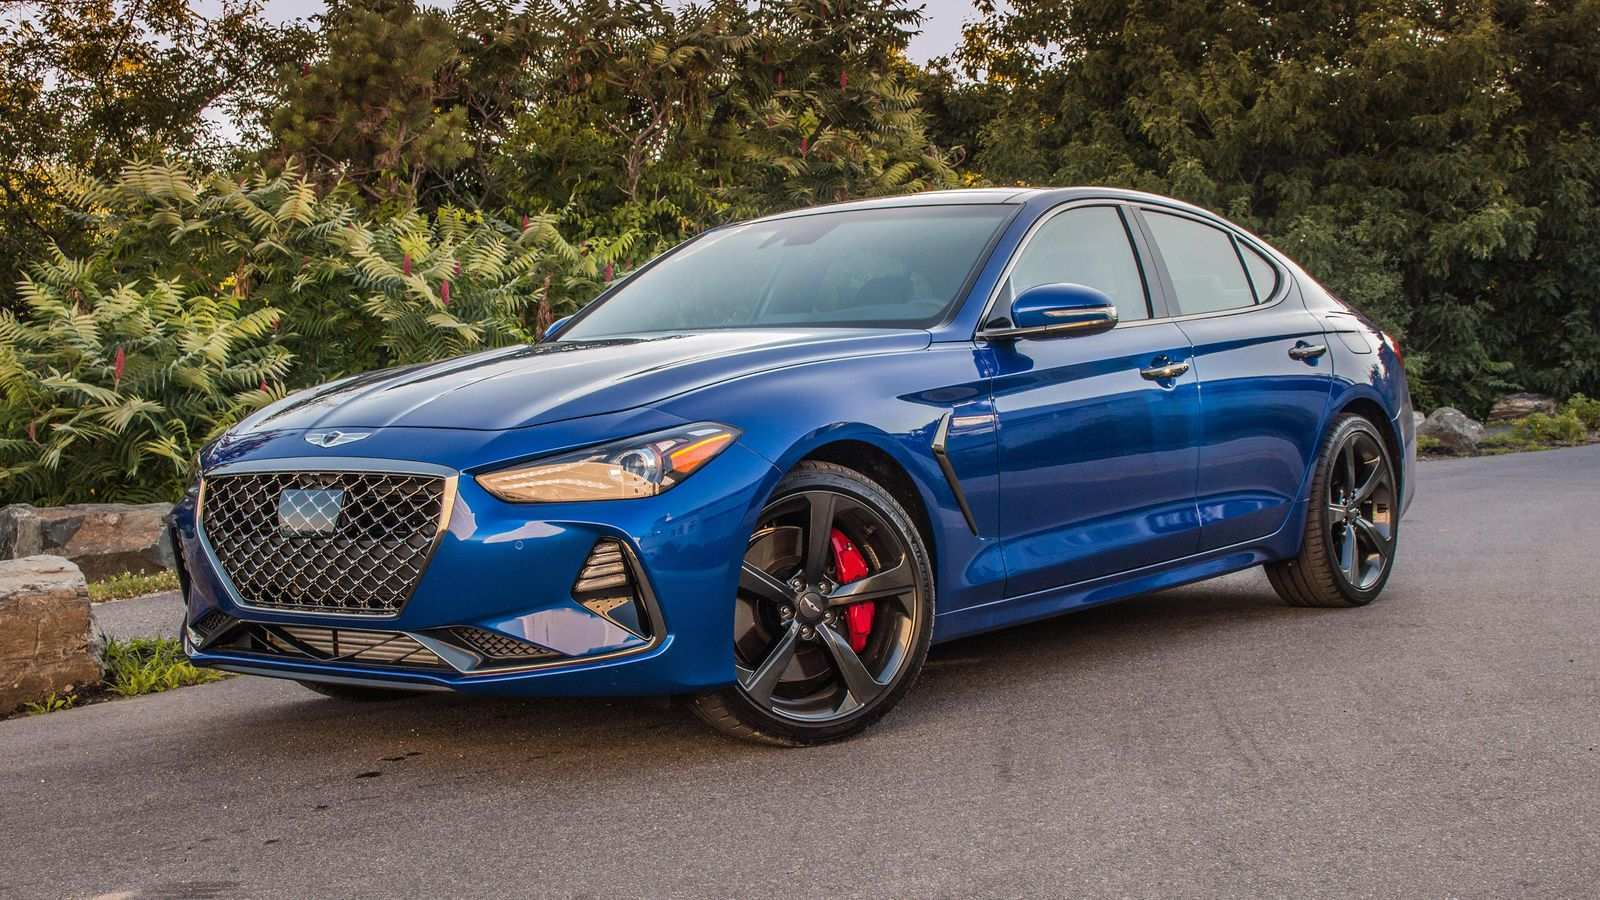 25 All New 2019 Hyundai Genesis Coupe Research New